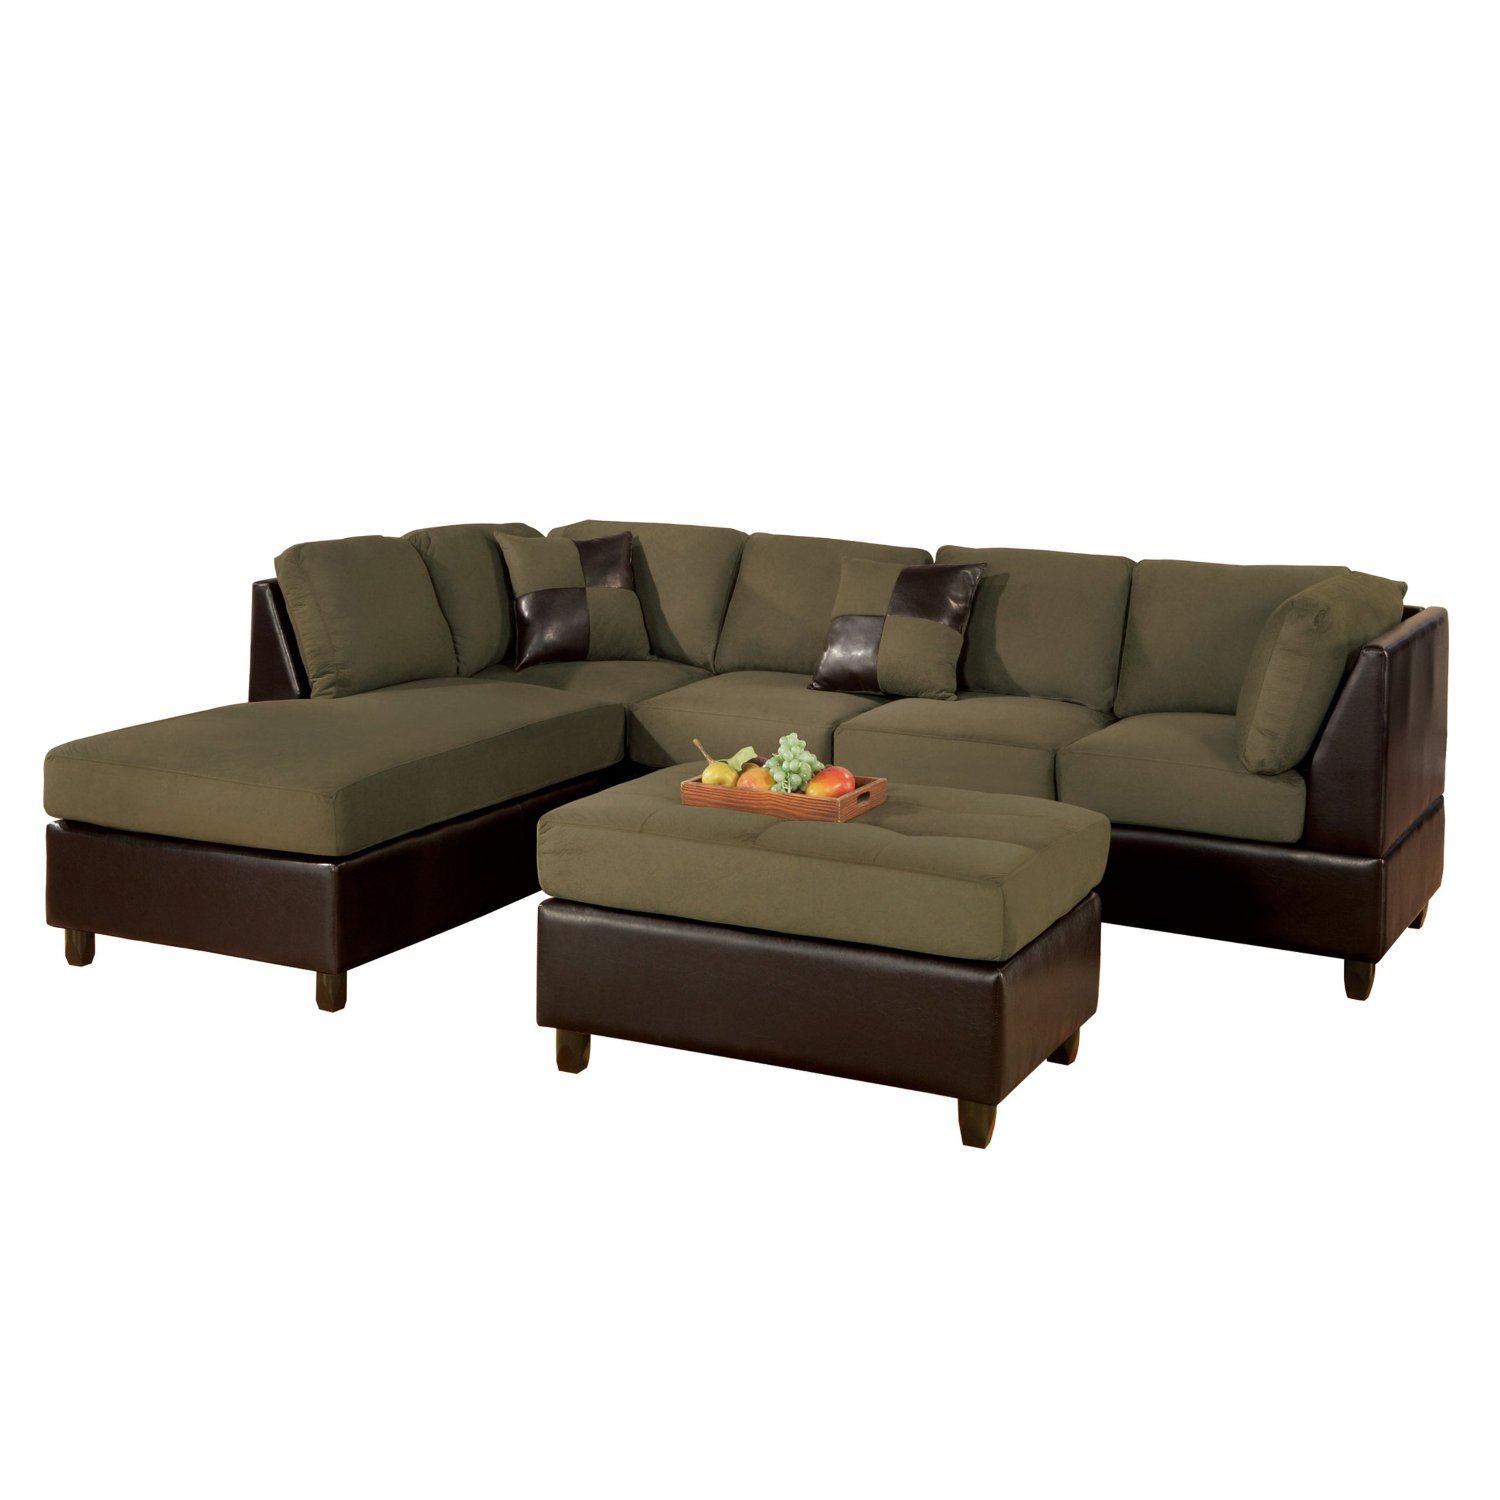 Sectional sofas for small spaces for Microfiber faux leather 3 piece sectional sofa set